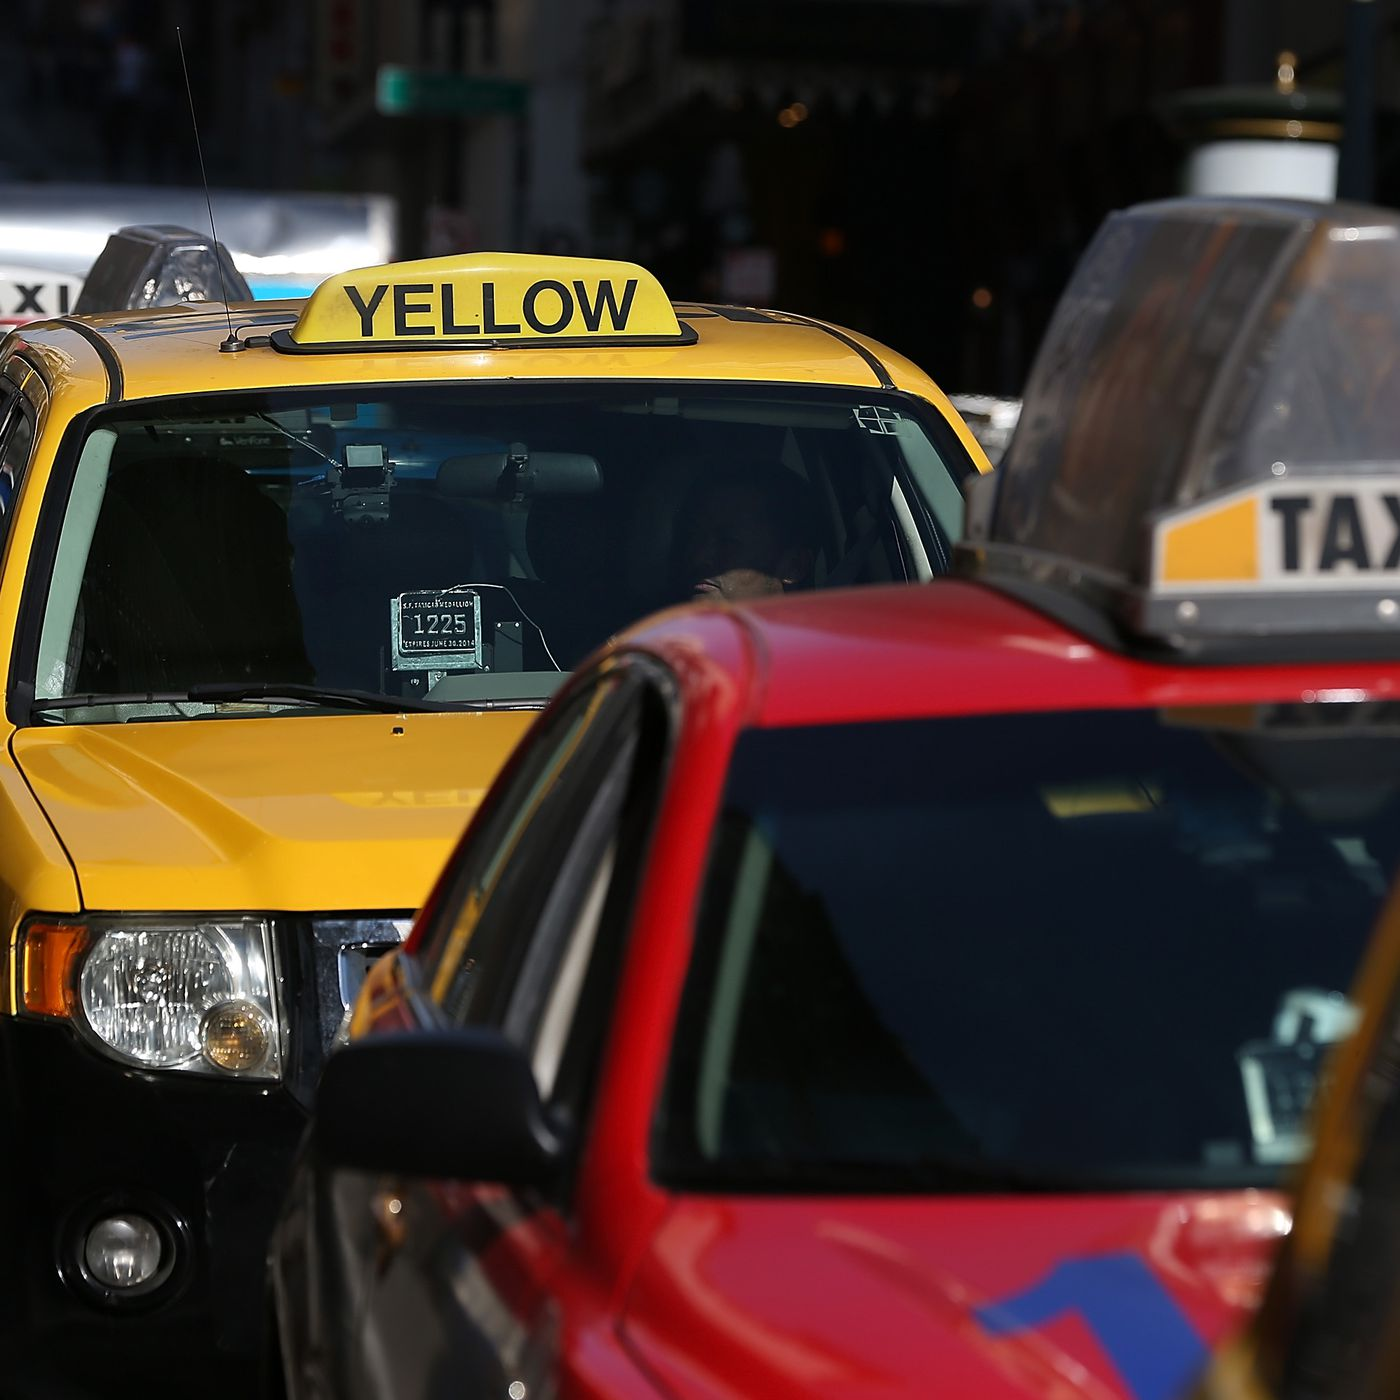 Thanks to Uber, San Francisco's largest yellow cab company